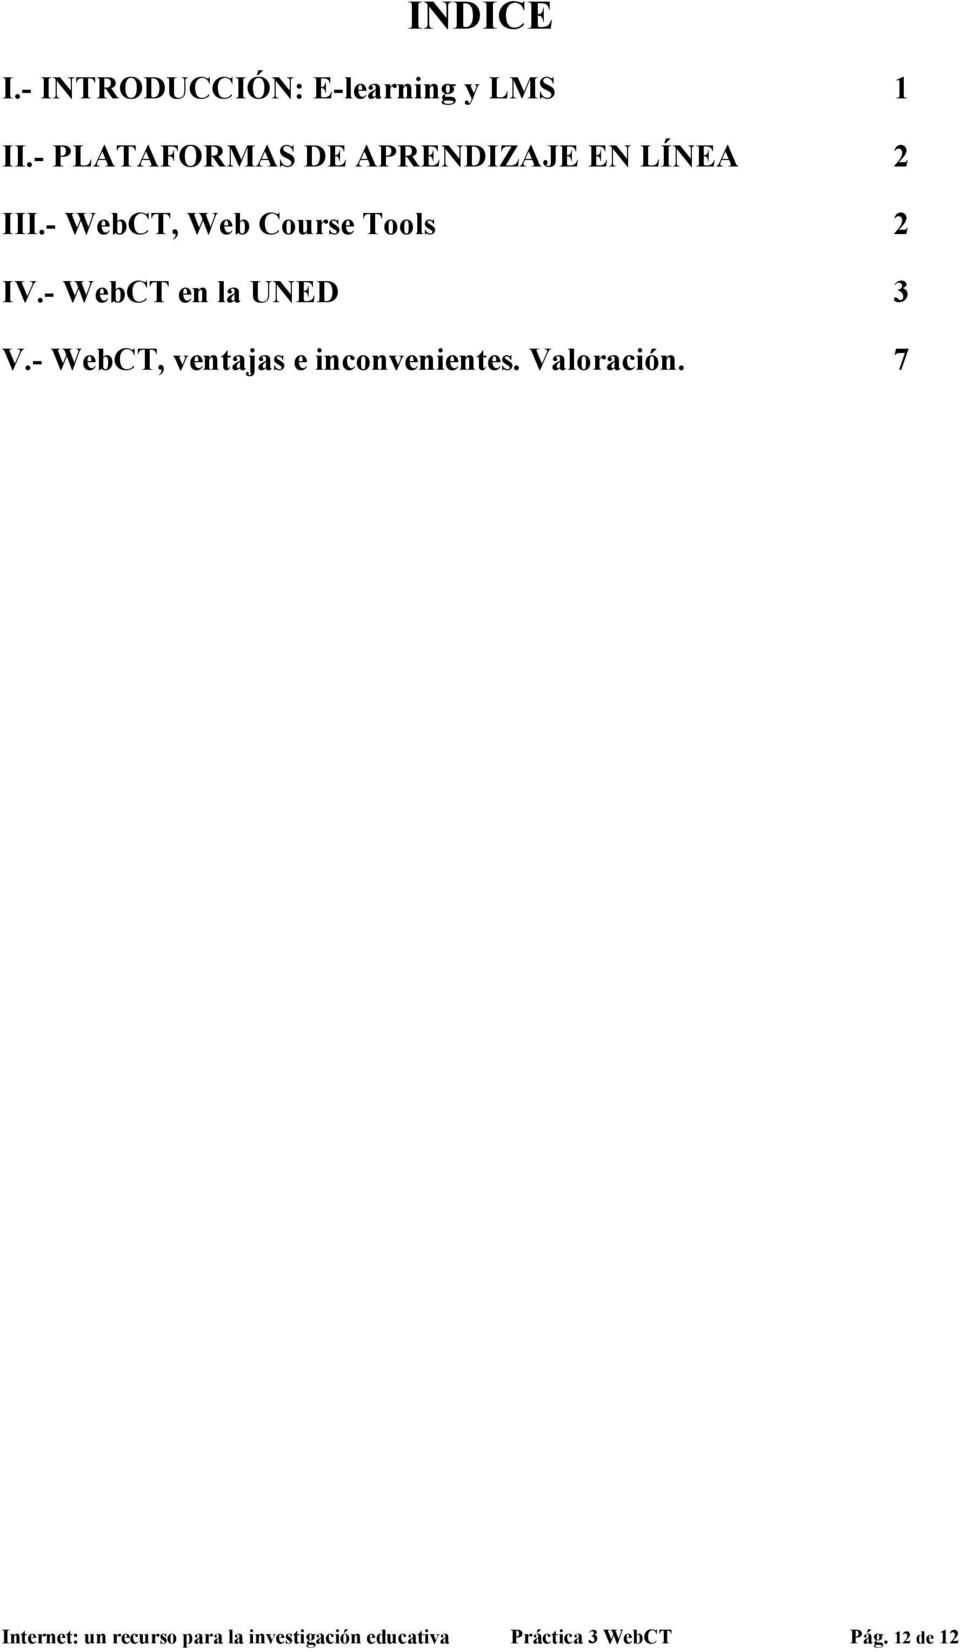 - WebCT, Web Course Tools 2 IV.- WebCT en la UNED 3 V.